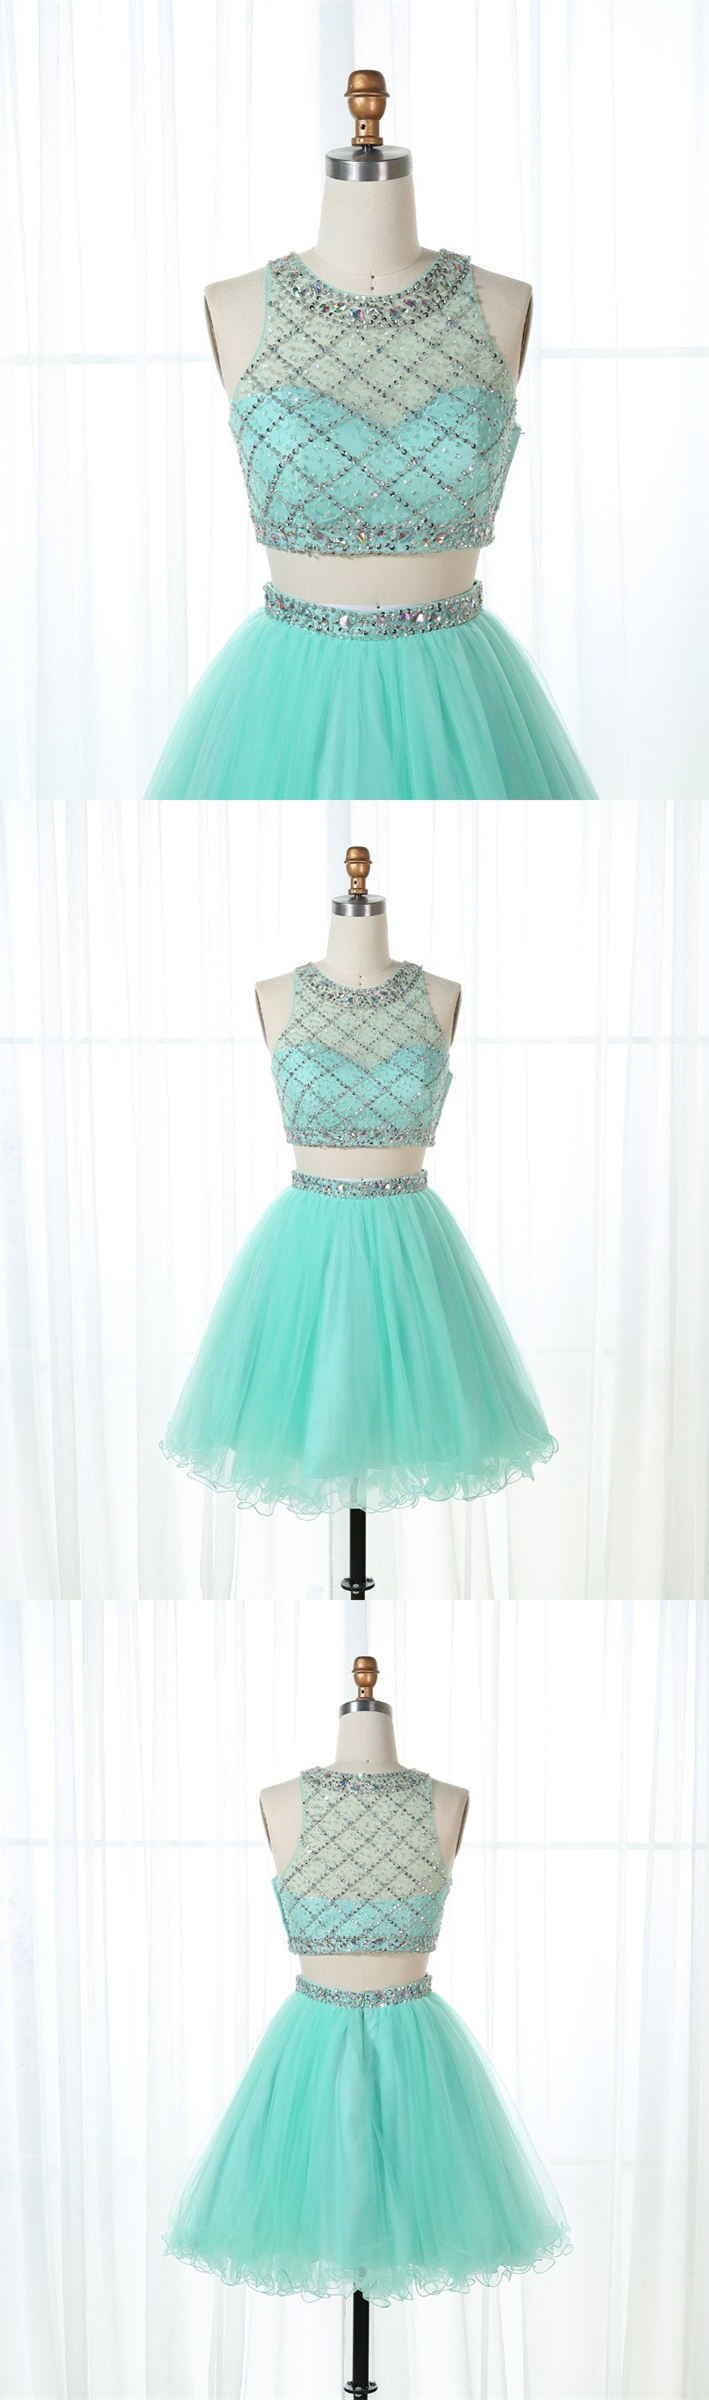 Two Piece Round Neck Mint Green Tulle Short Homecoming Dress with ... 45650fab6